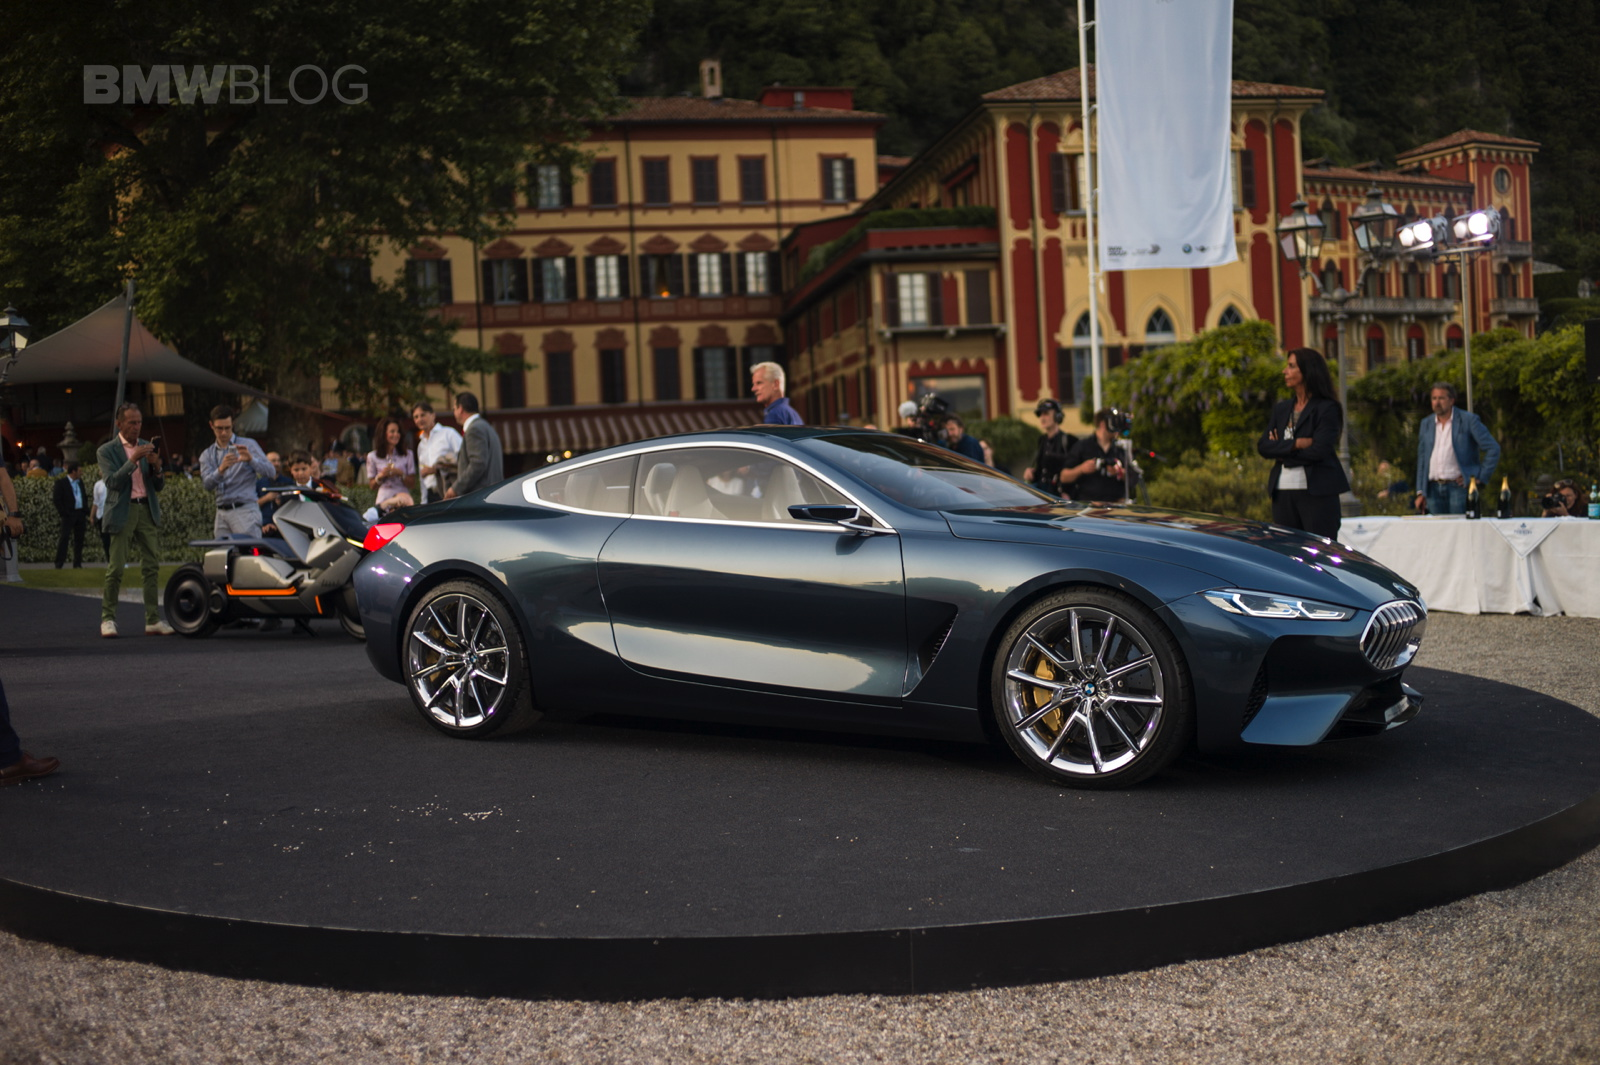 BMW 8 Series Concept pictures 21